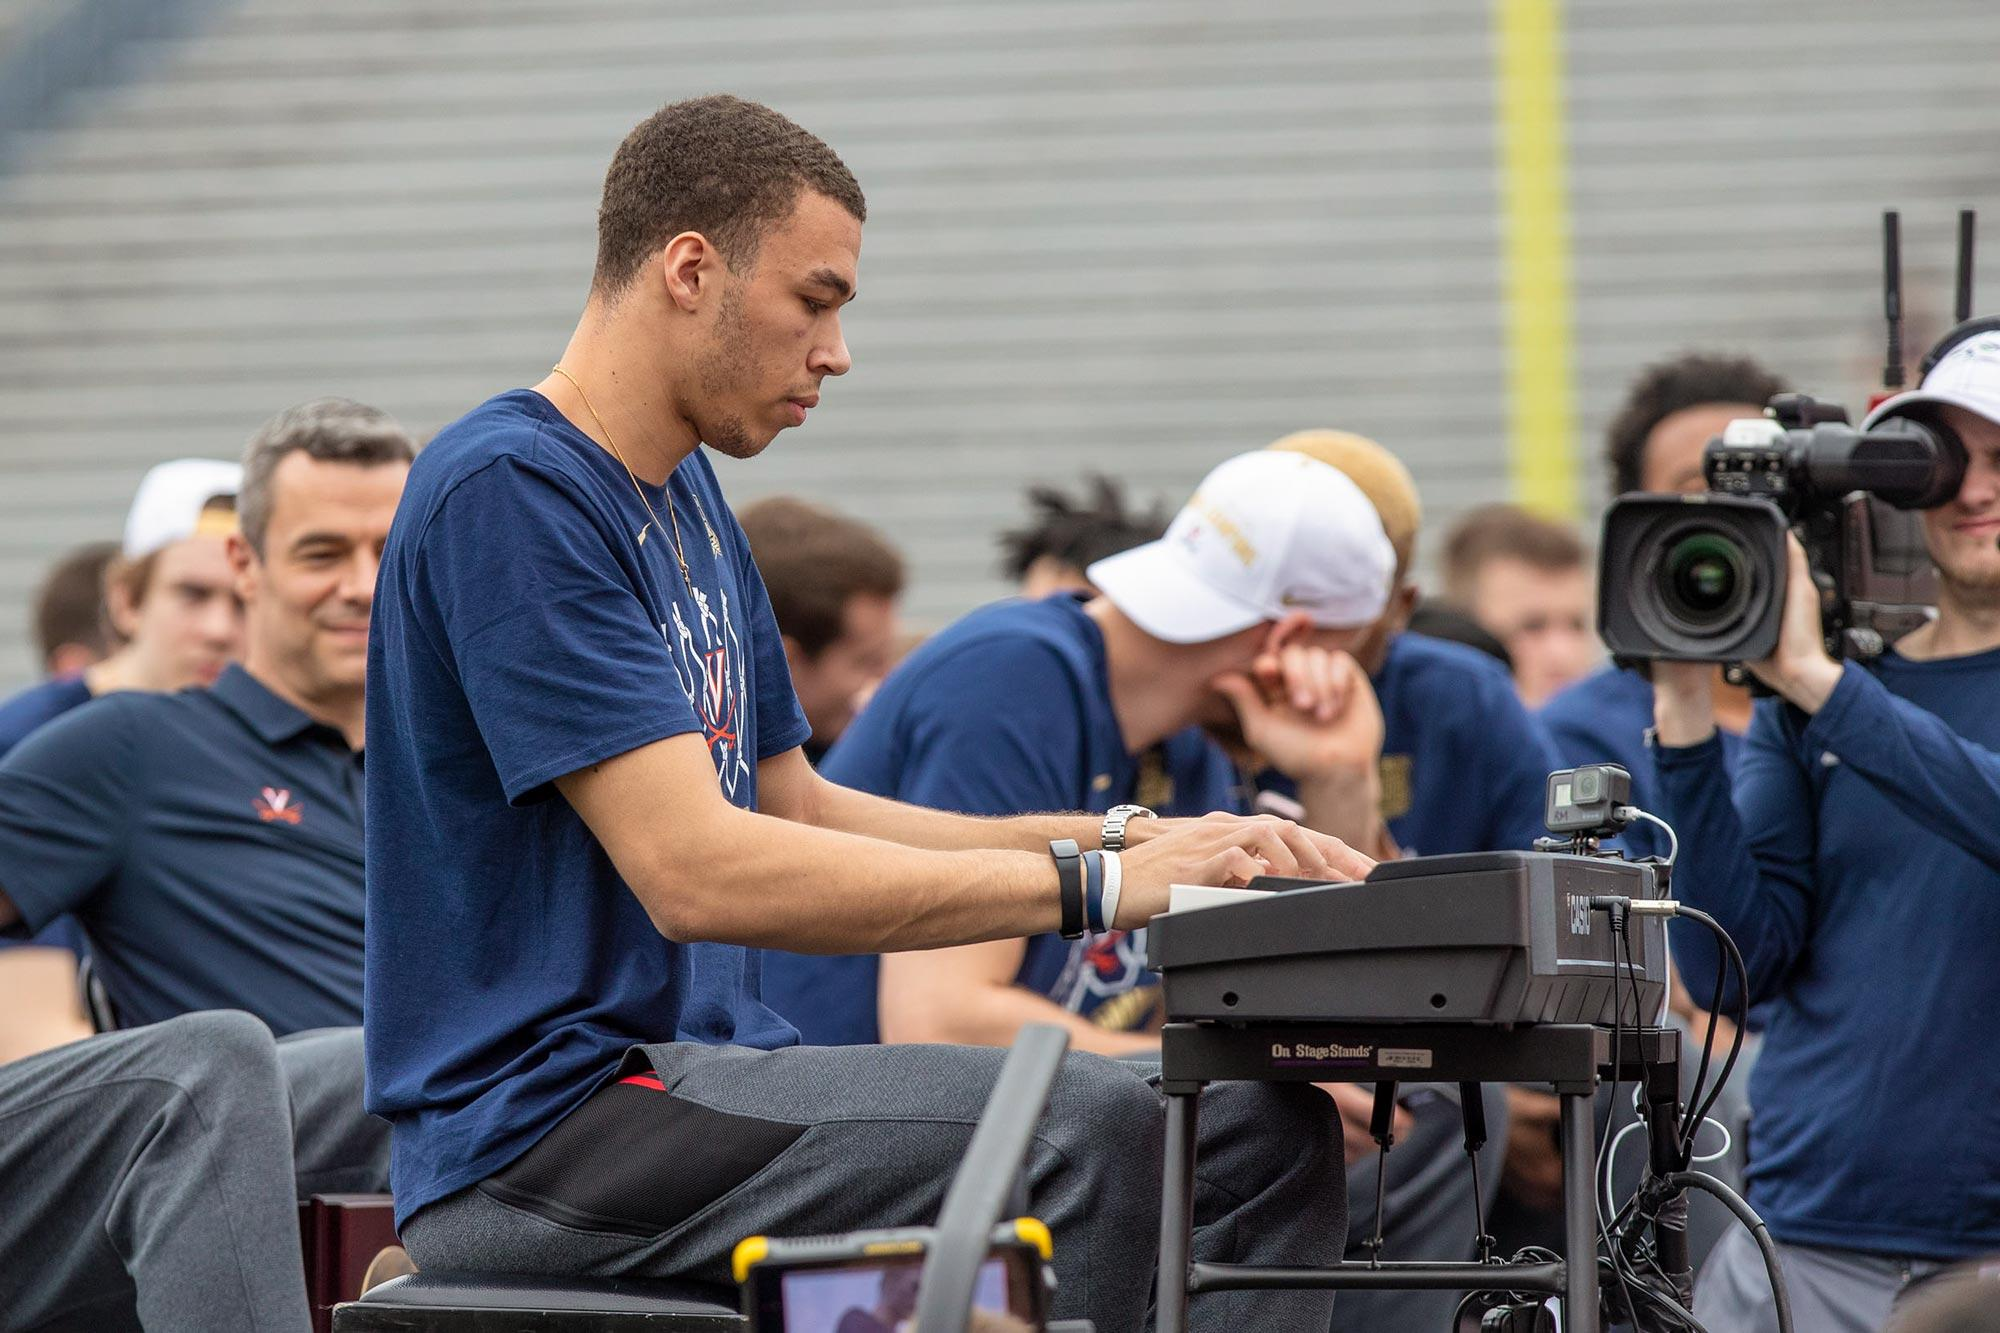 """Having played """"the piano for thousands of UVA basketball fans at last season's NCAA championship celebration at Scott Stadium, former Hoos basketball player Francesco Badocchi knows a thing or two about celebrity."""